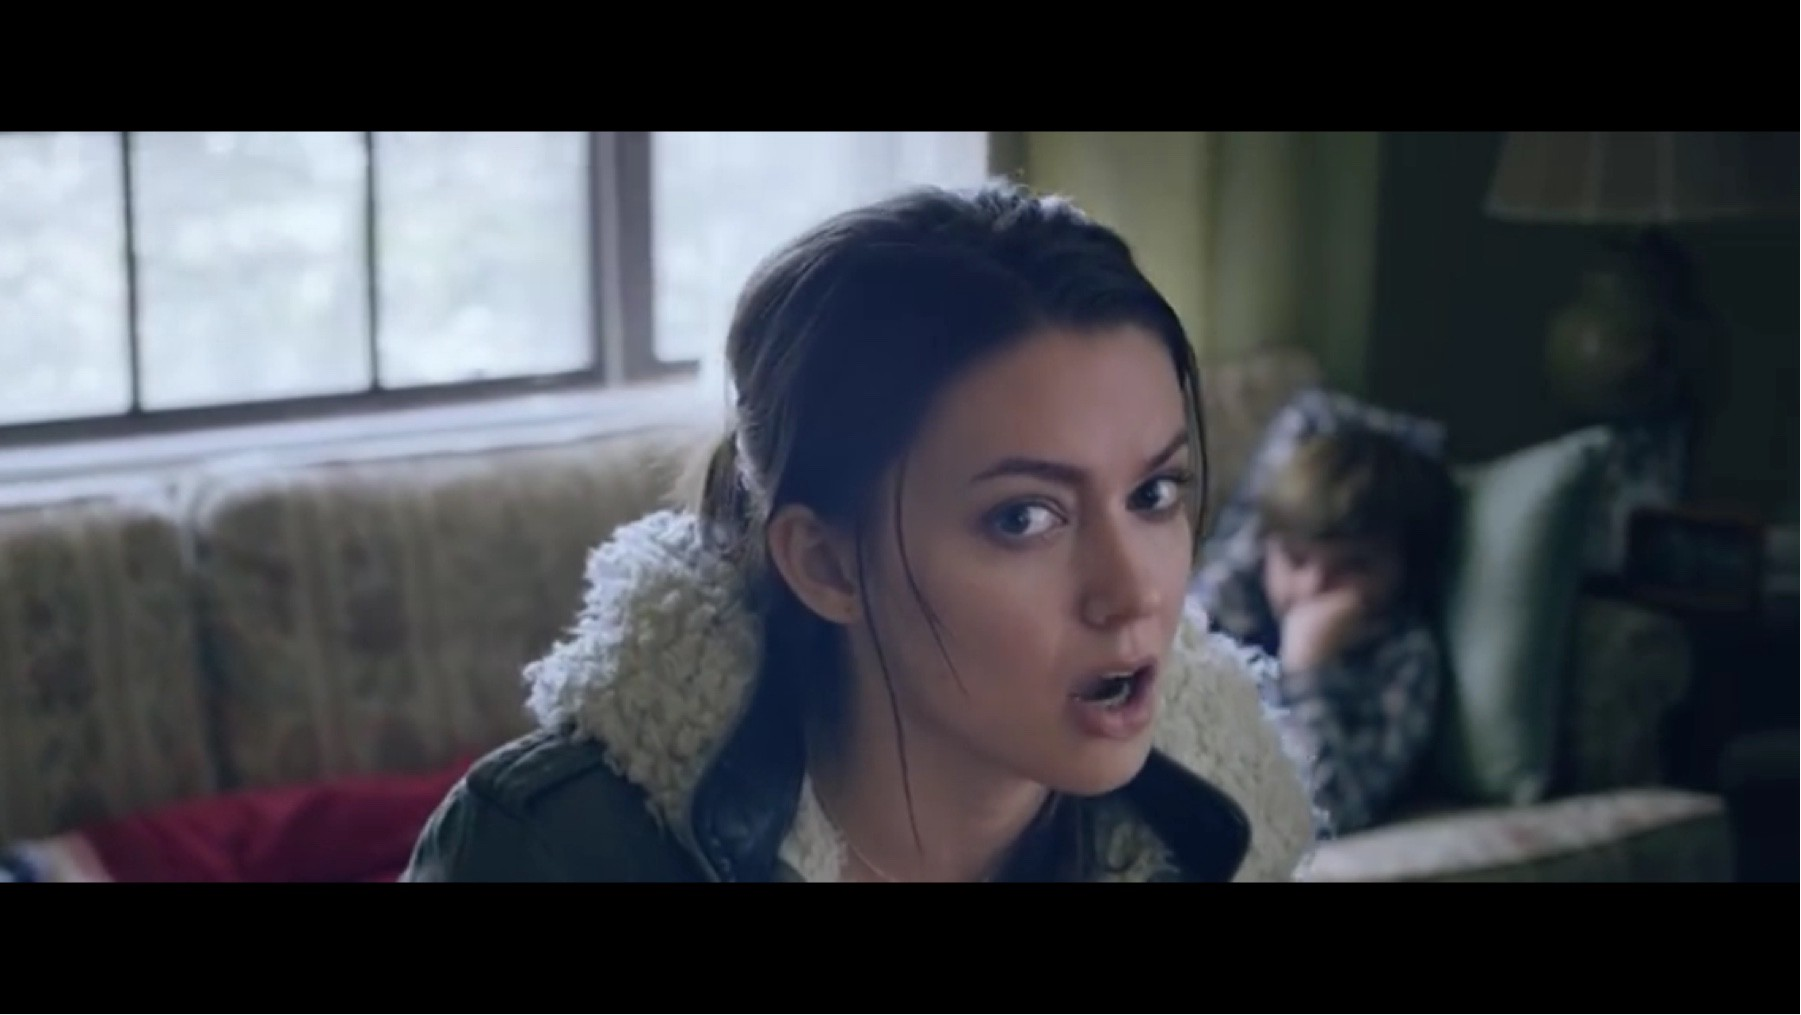 What makes Meg Myers' debut album 'Sorry' so wonderful and